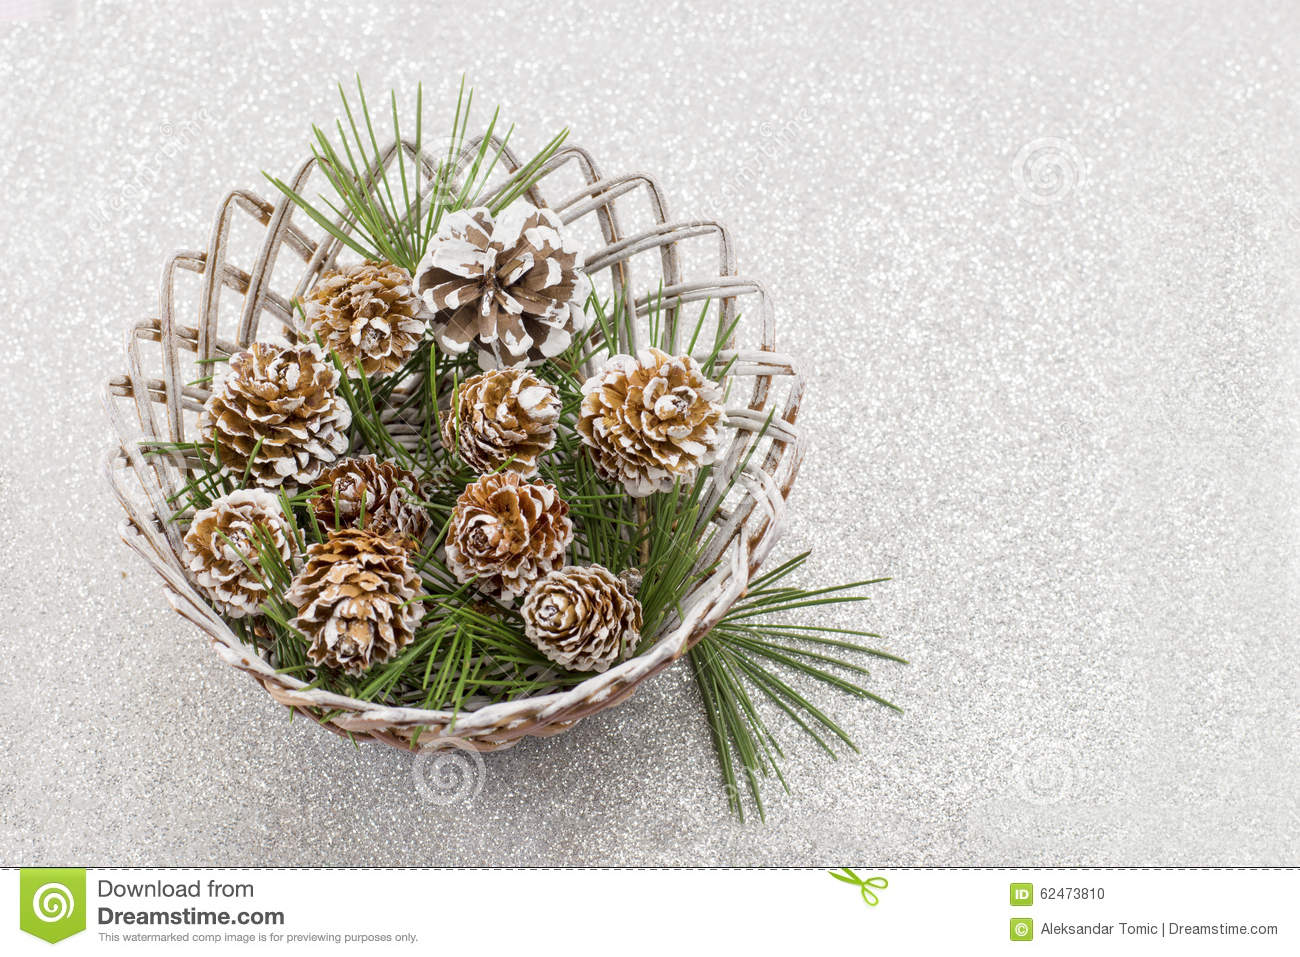 Snow covered pine cones on shiny background